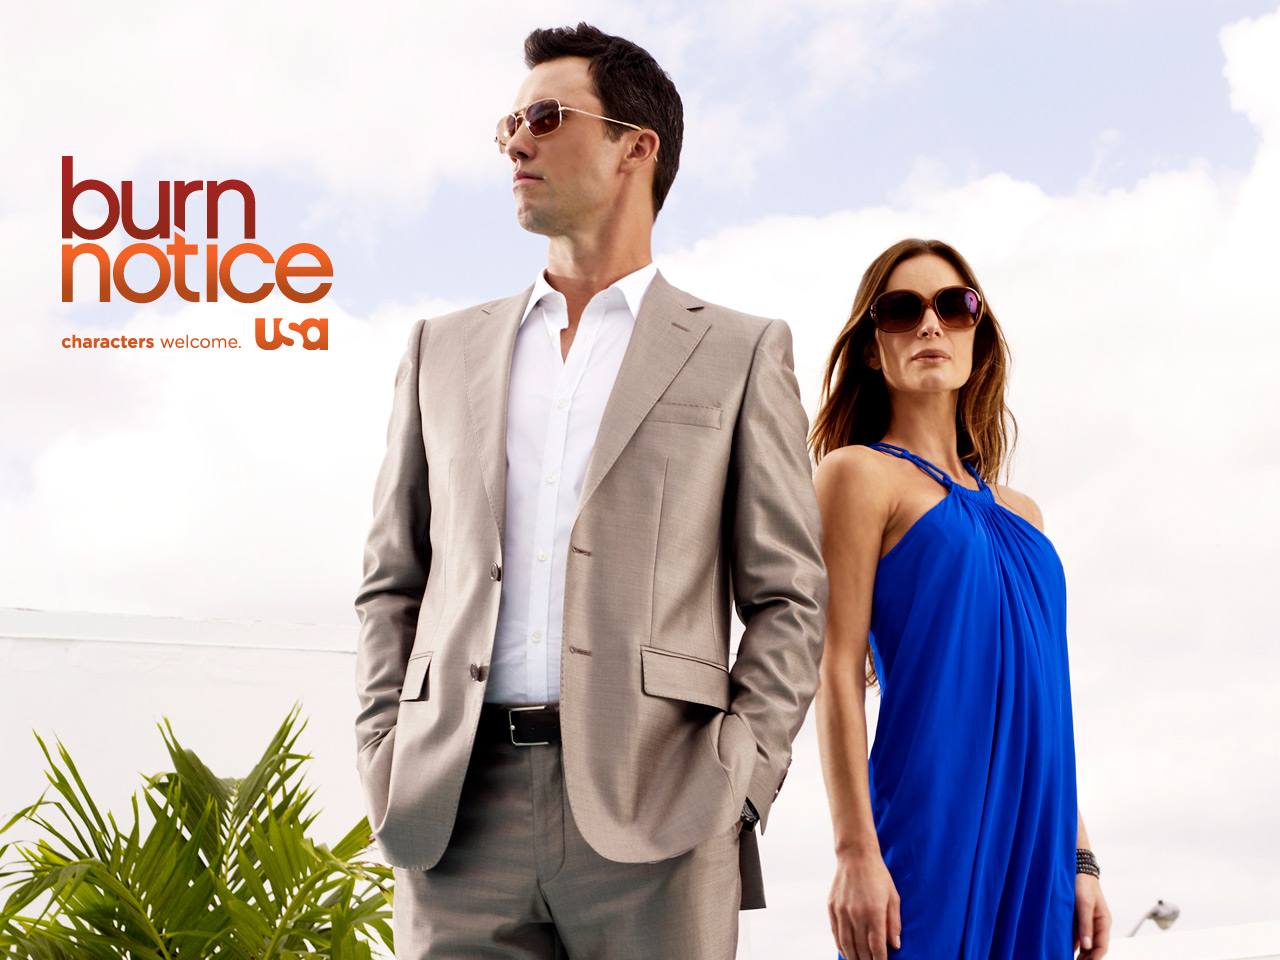 Michael Burn Notice